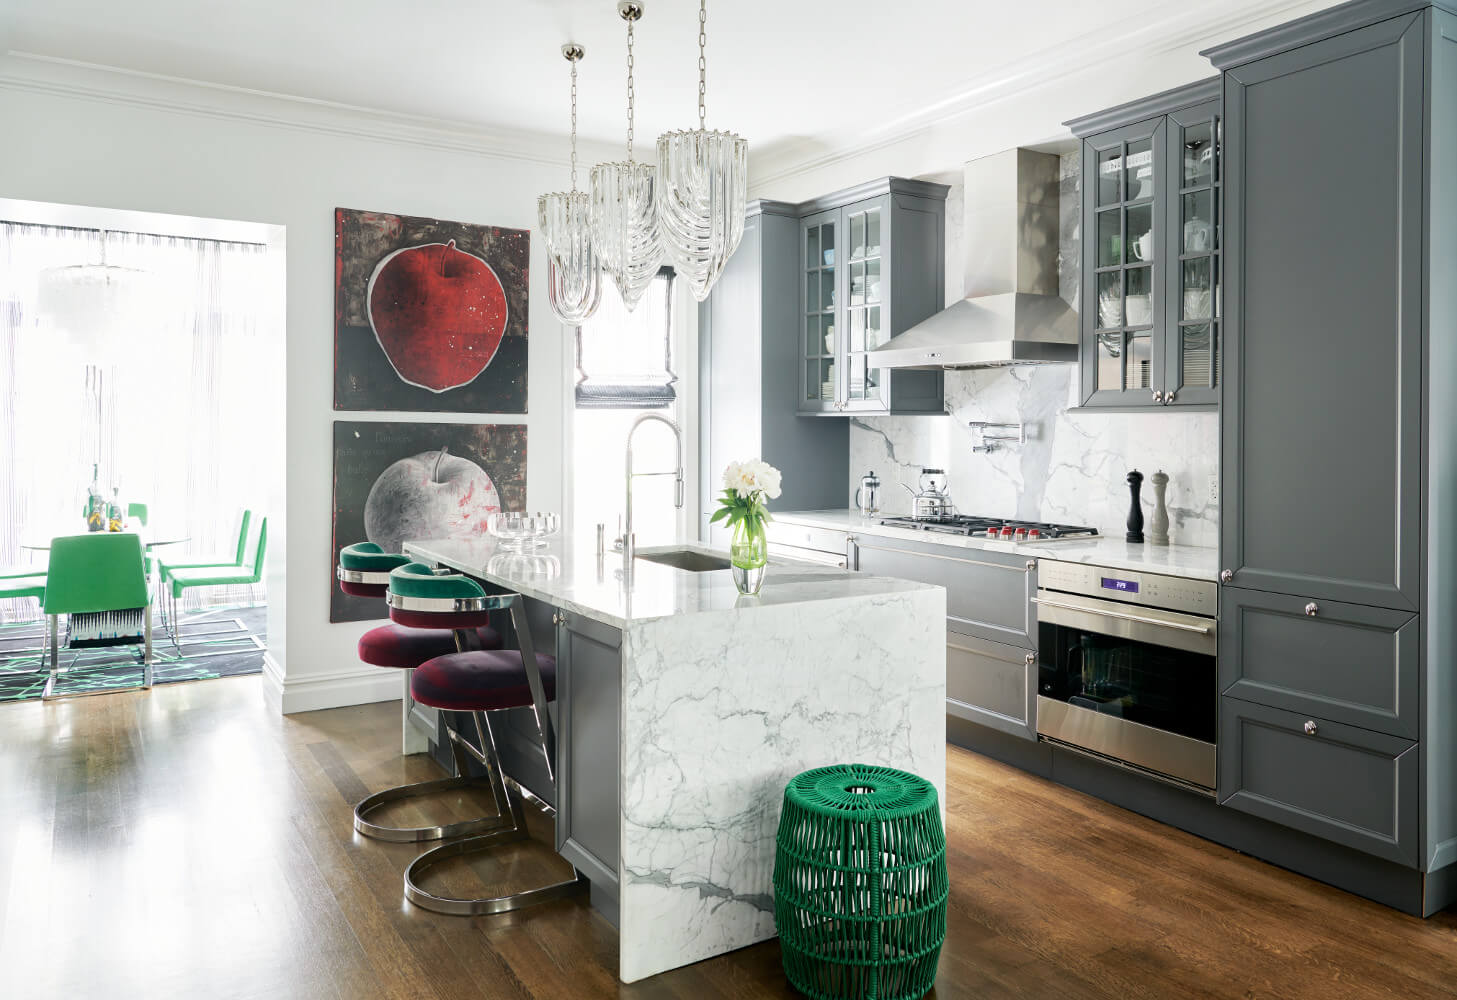 The kitchen of this Prospect Park West twin house has a statuary marble backsplash and matching countertops with waterfall edges.